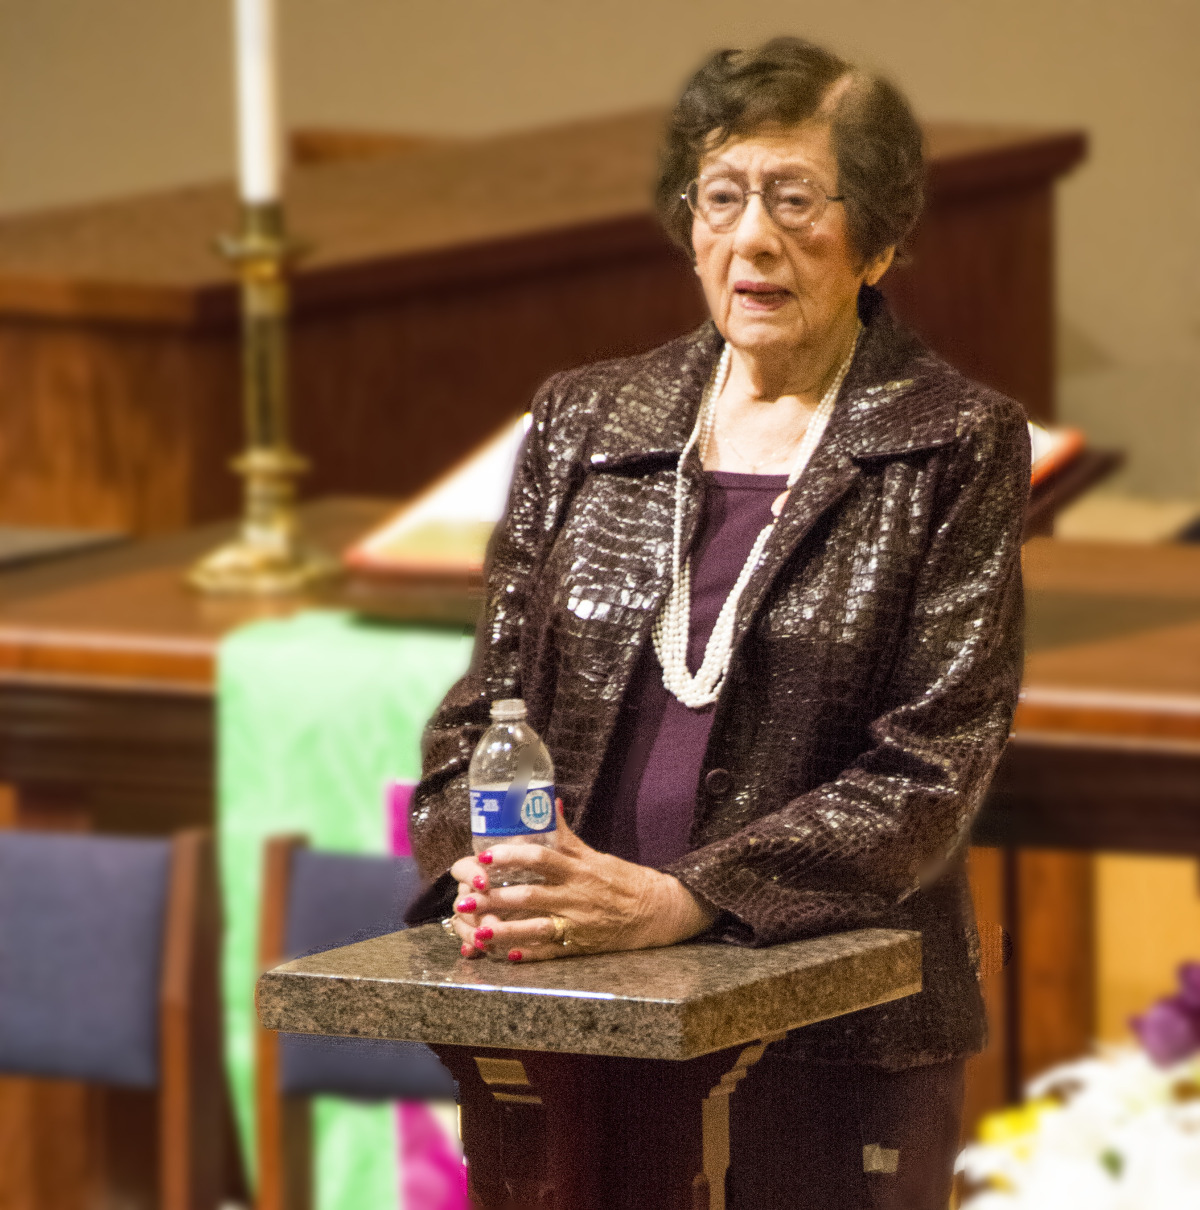 Agnes Schwartz speaking at Countryside Community Church